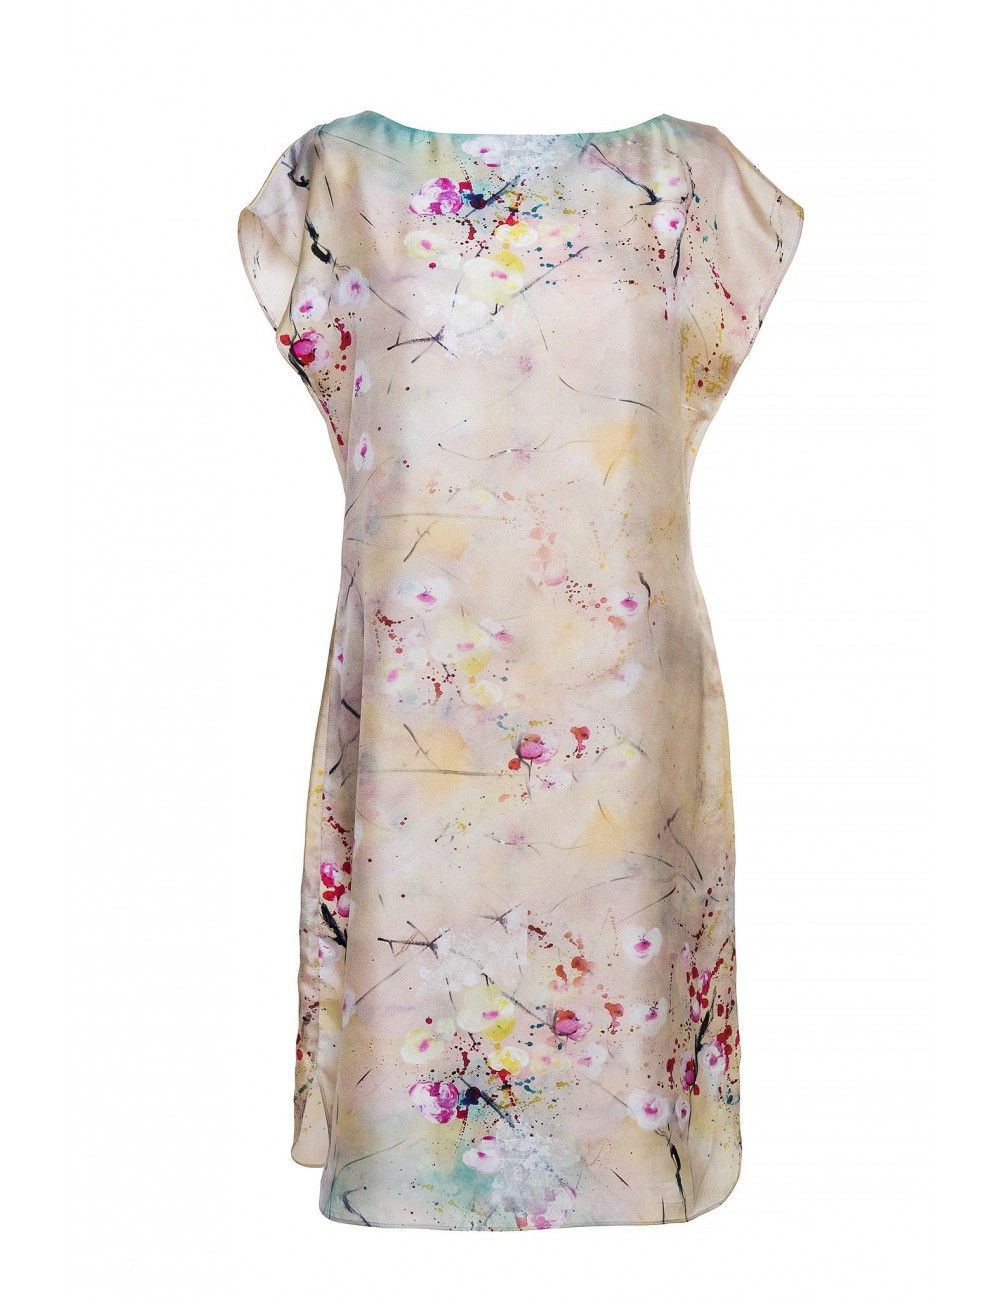 Scent of a Dream silk dress